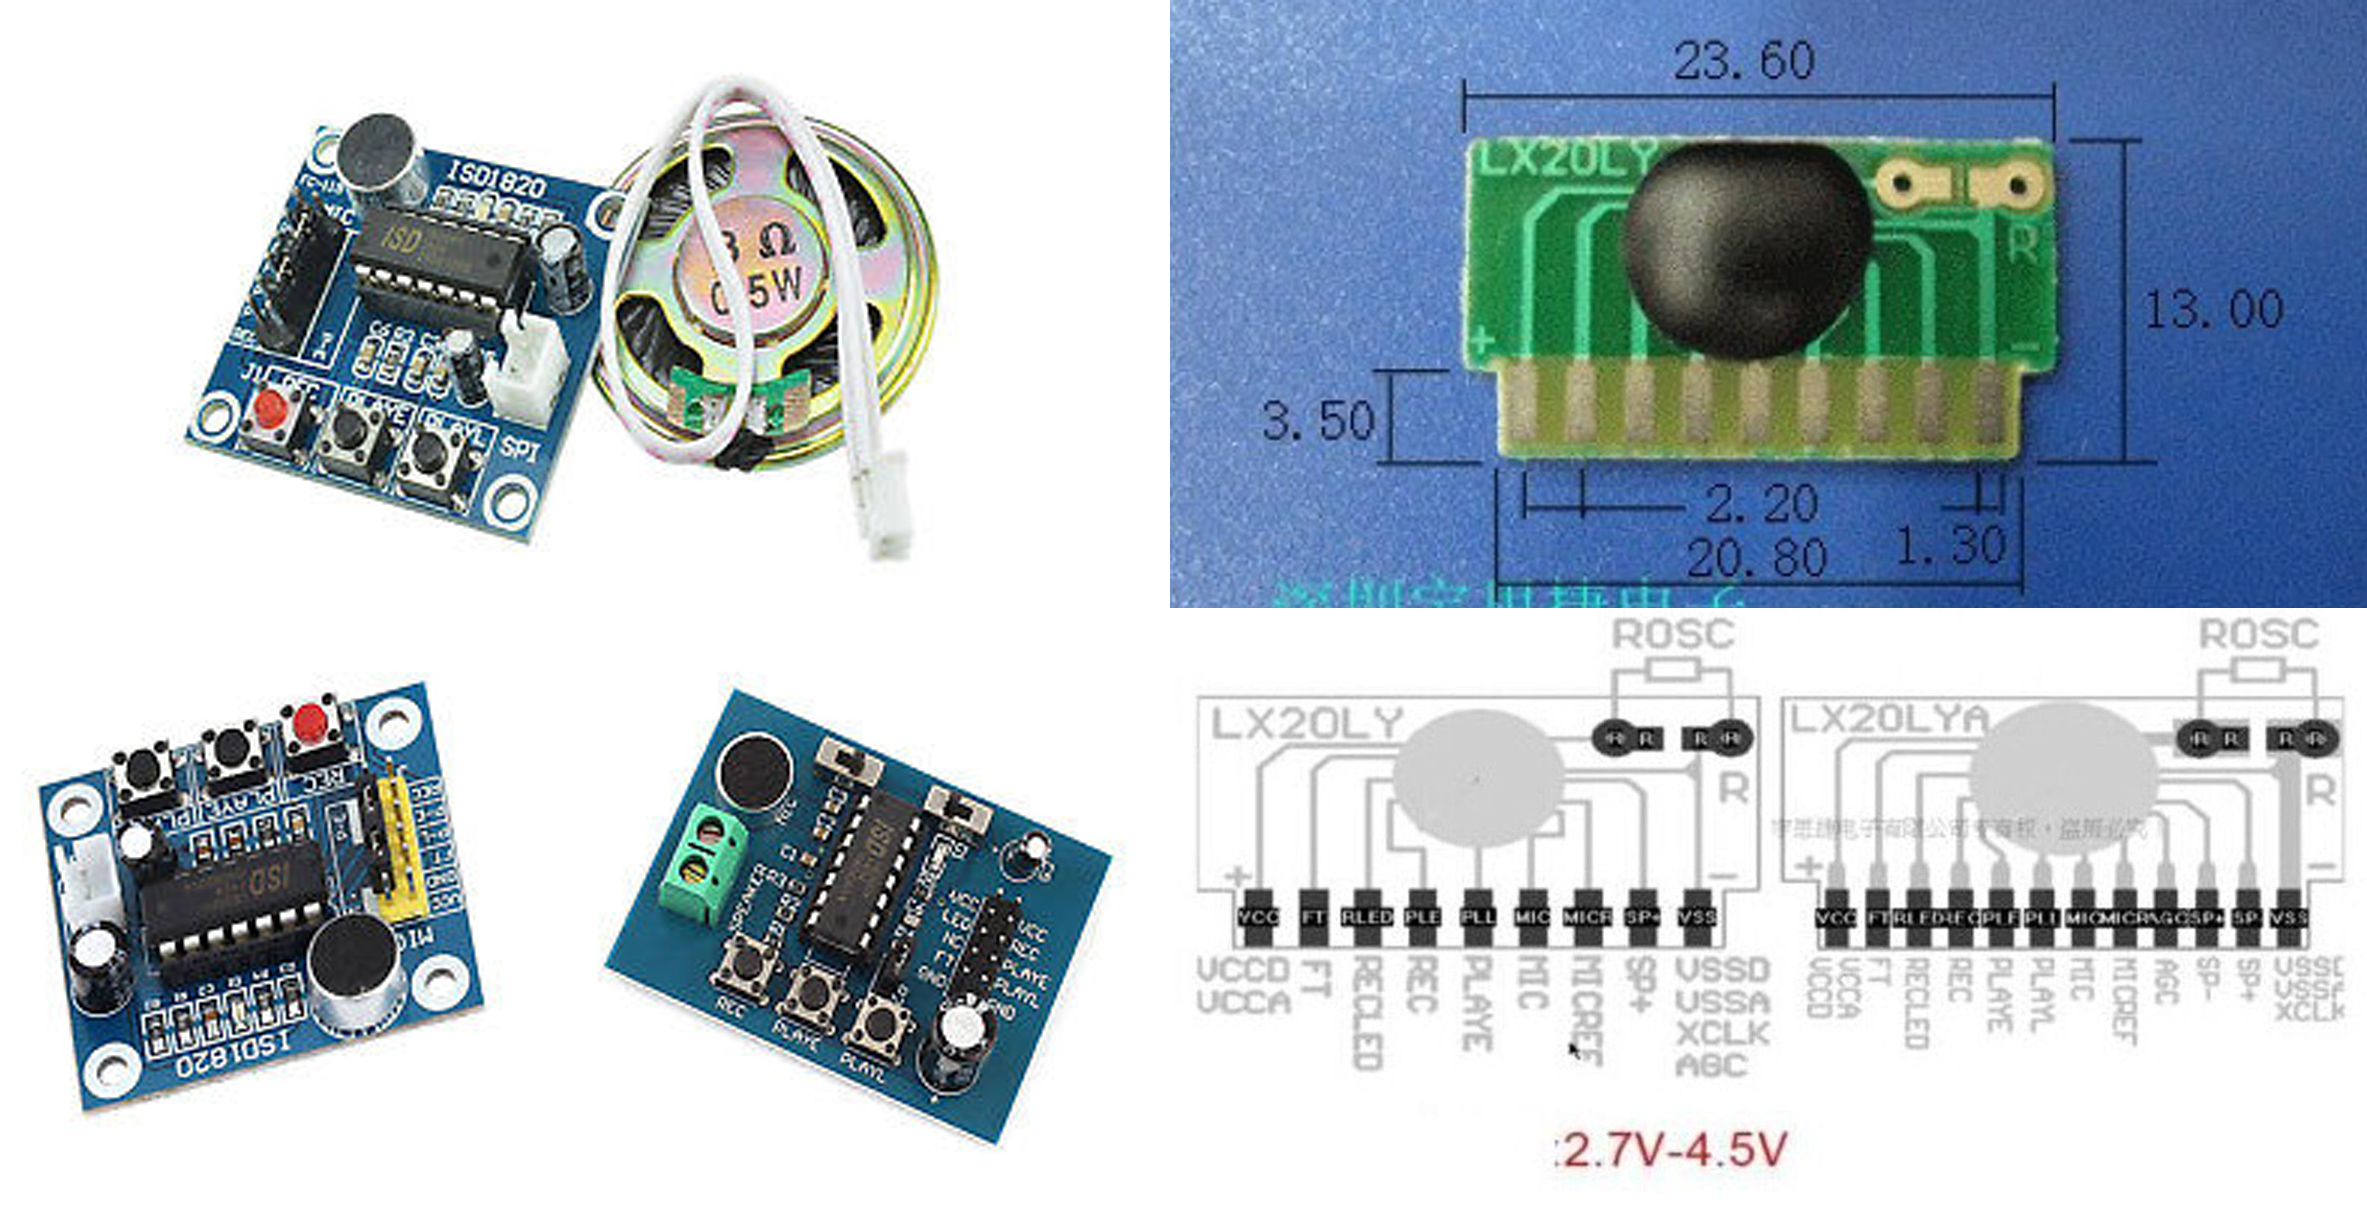 Construction Music Electronics Http Circuitdiagramhqewnet Adjustablevoltageregulatorcircuit These Are Very Reasonably Priced At 1 Or Less Although Not Nearly As Cheap My Voice Recorder Boards Long I Could Get Them To Work In The Way